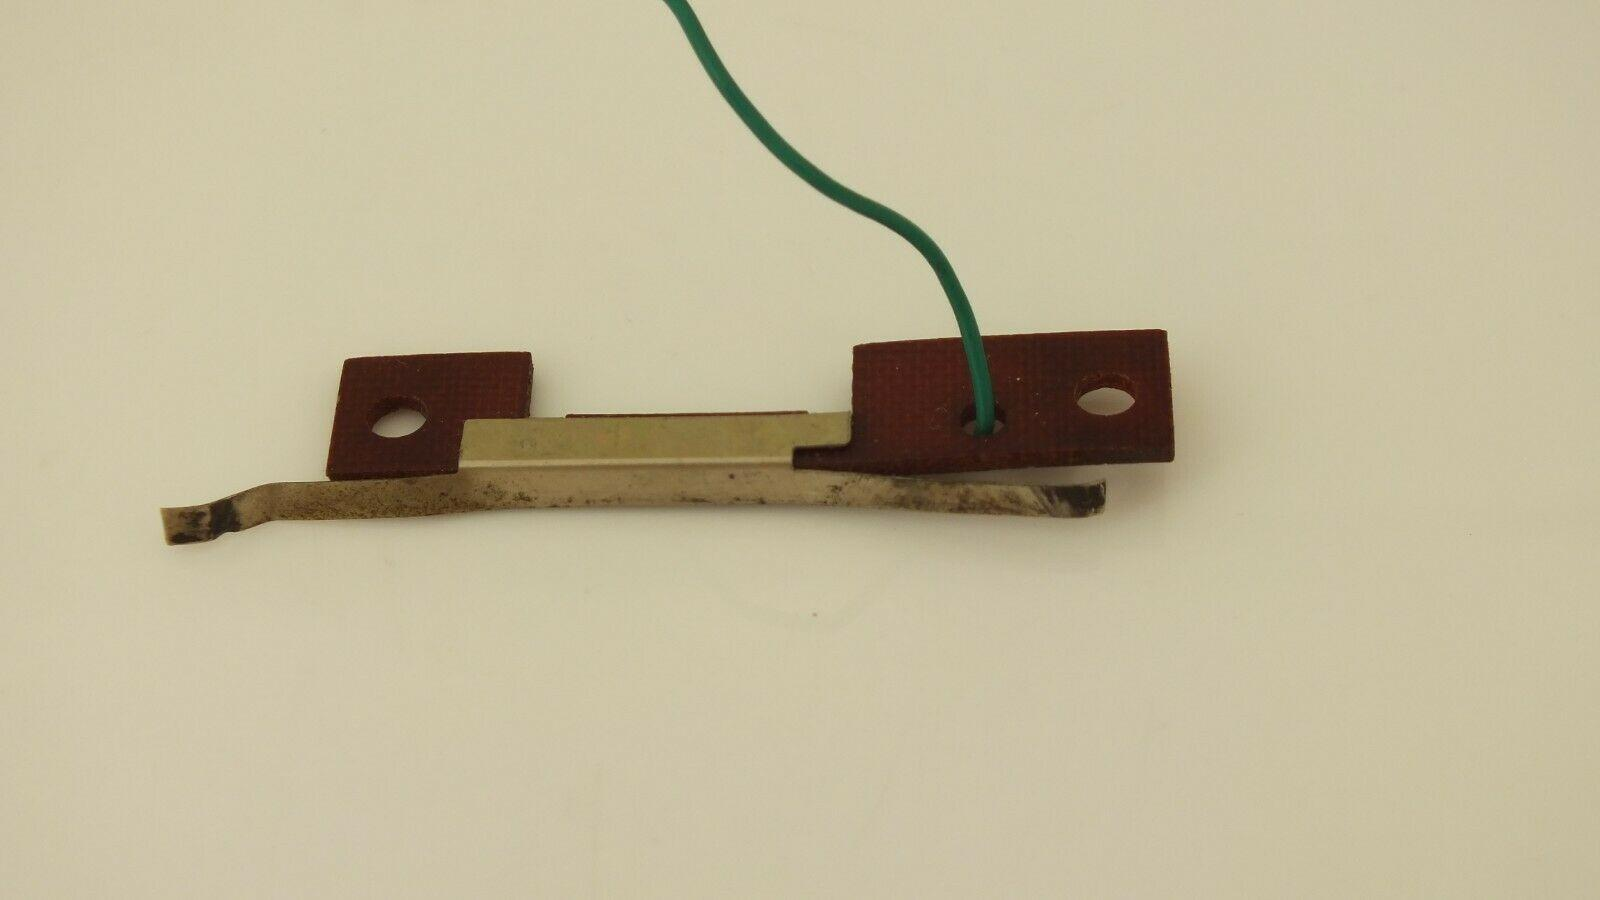 20634/35 #  HORNBY DUBLO COLLECTOR  SPRING & MOUNTING PLATE 0-6-0 2 RAIL     L6E